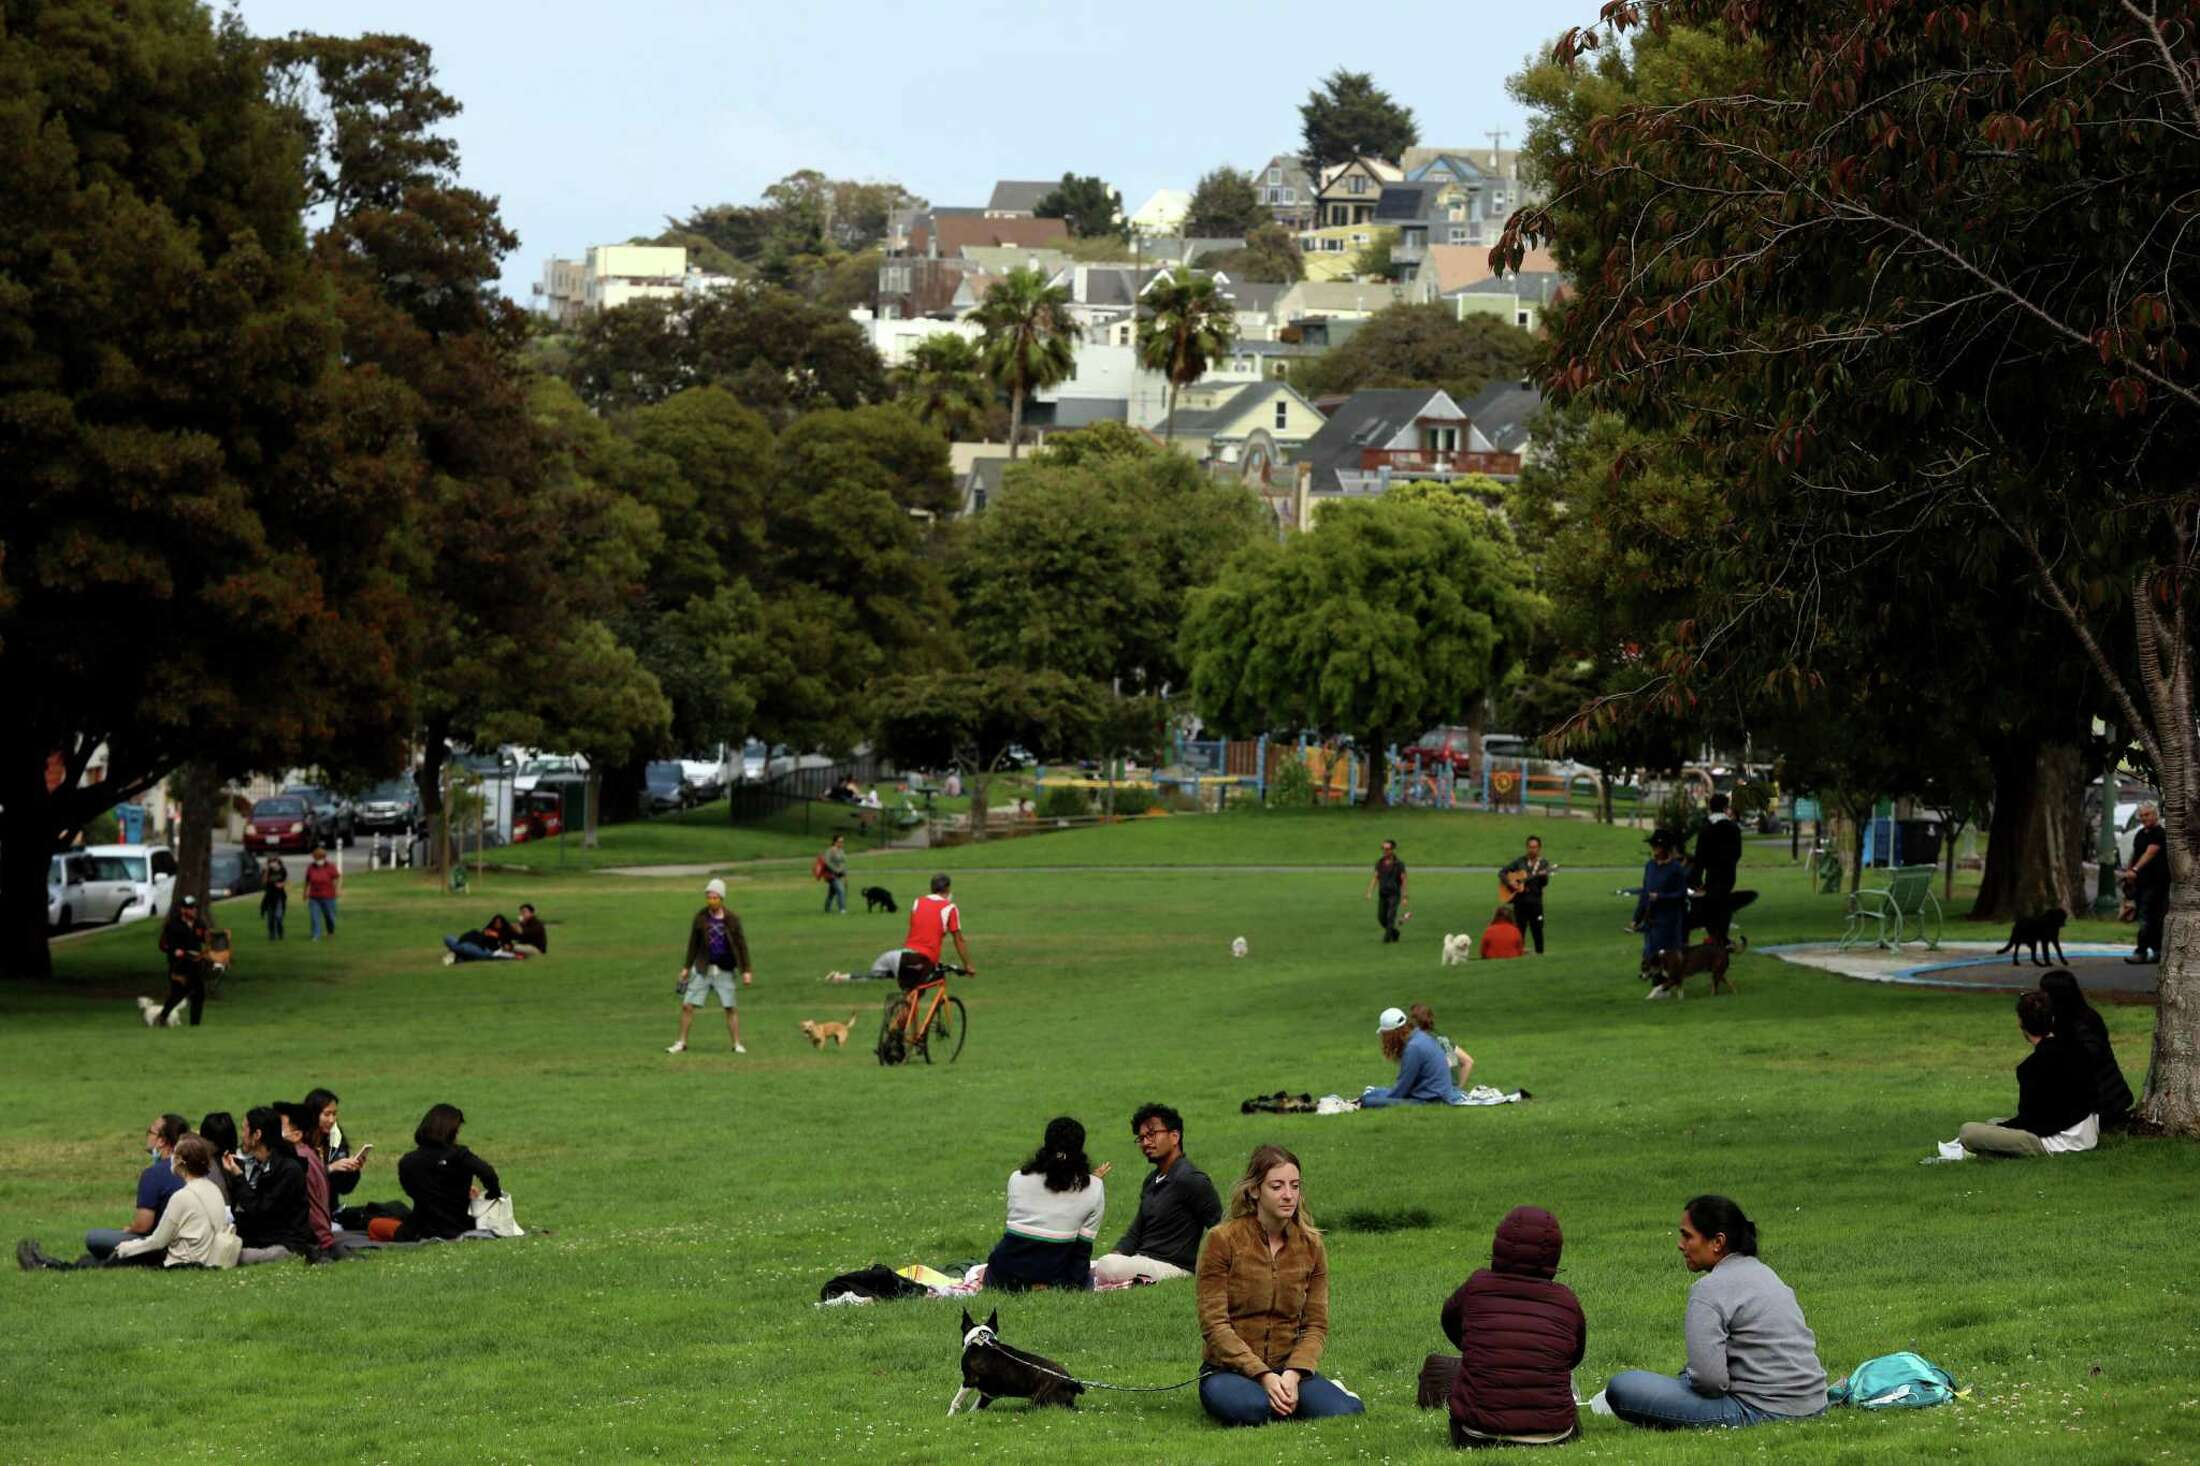 It's one of San Francisco's hottest neighborhoods. Why isn't it growing?